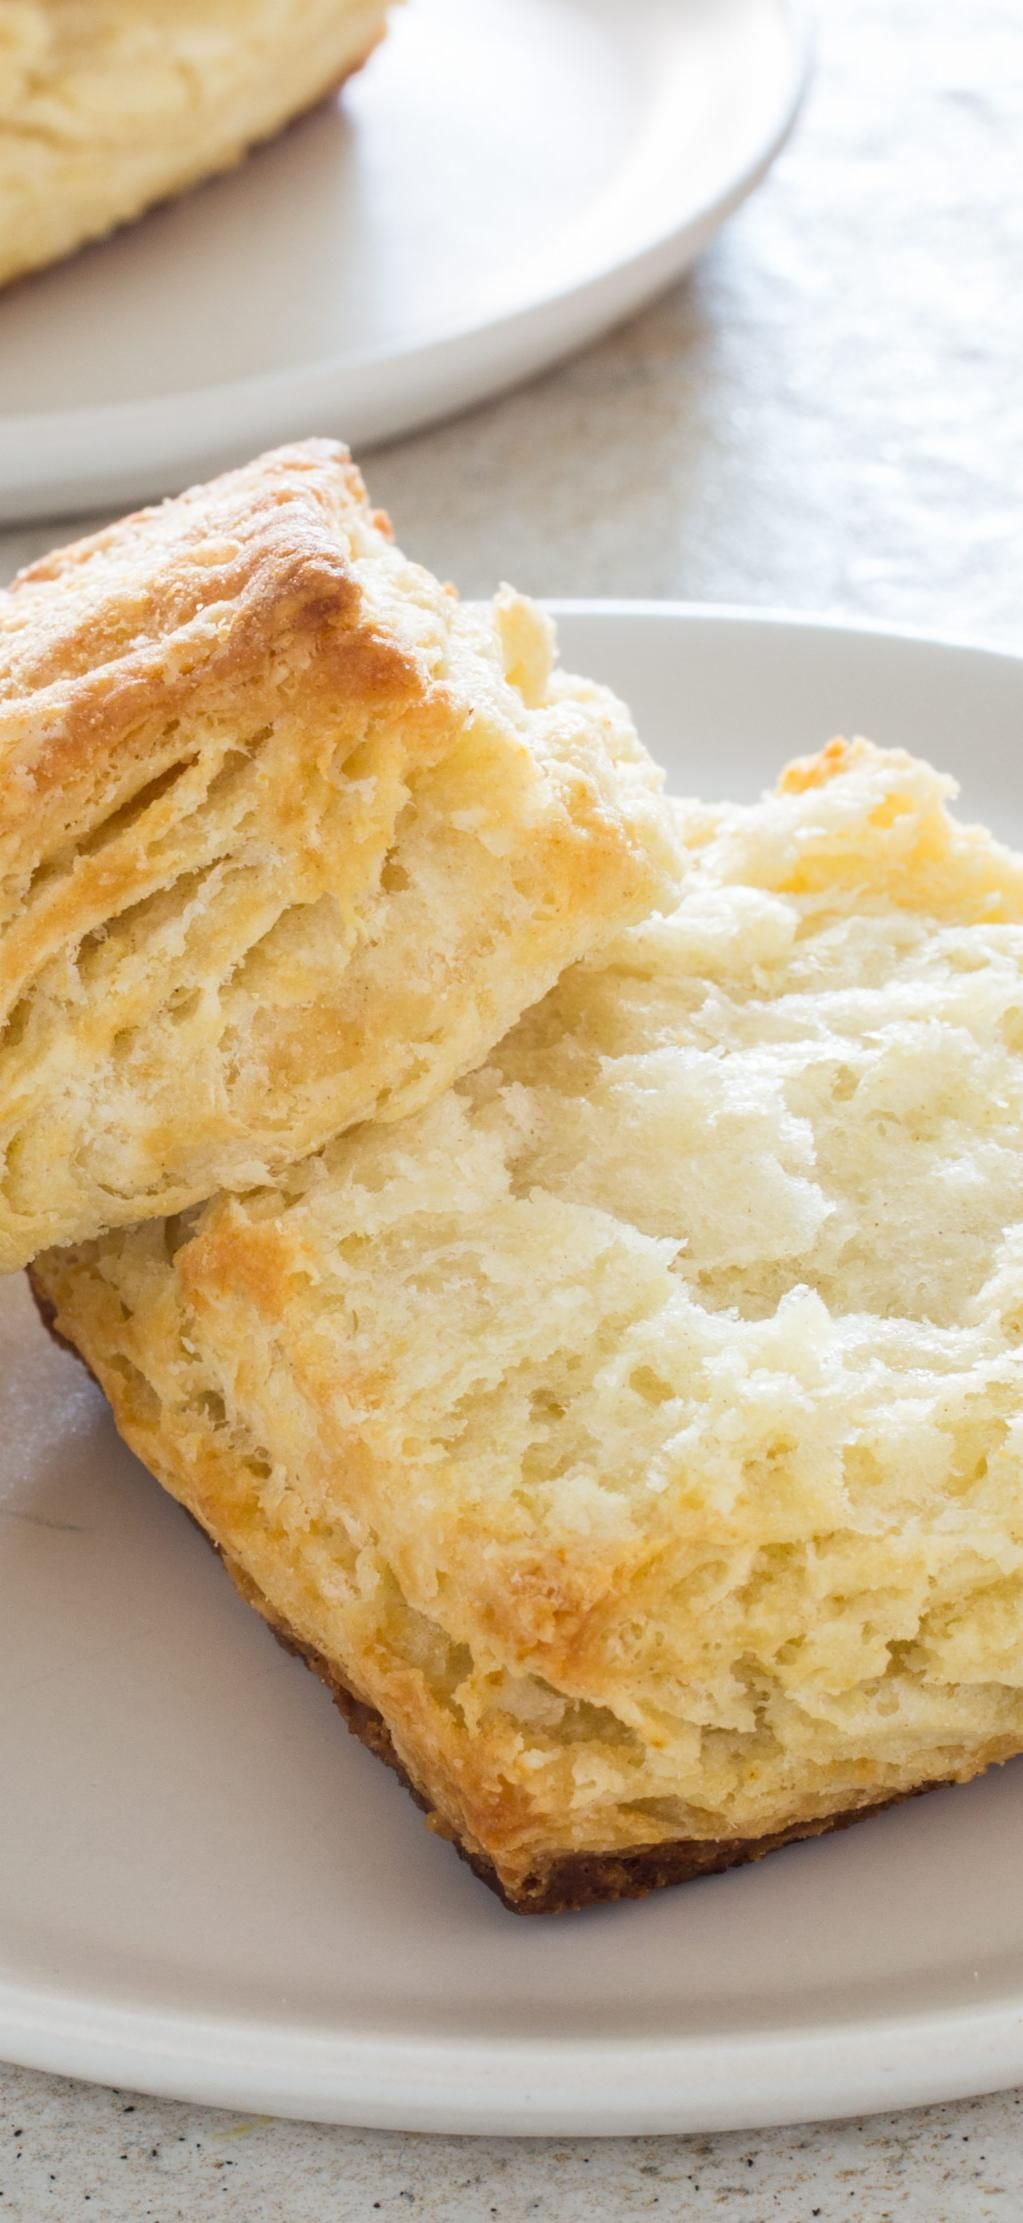 Ultimate Flaky Buttermilk Biscuit This Is Not An Everyday Biscuit It S An Ethereal Once In A While Biscuit Recipe No Yeast Buttermilk Recipes Biscuit Recipe